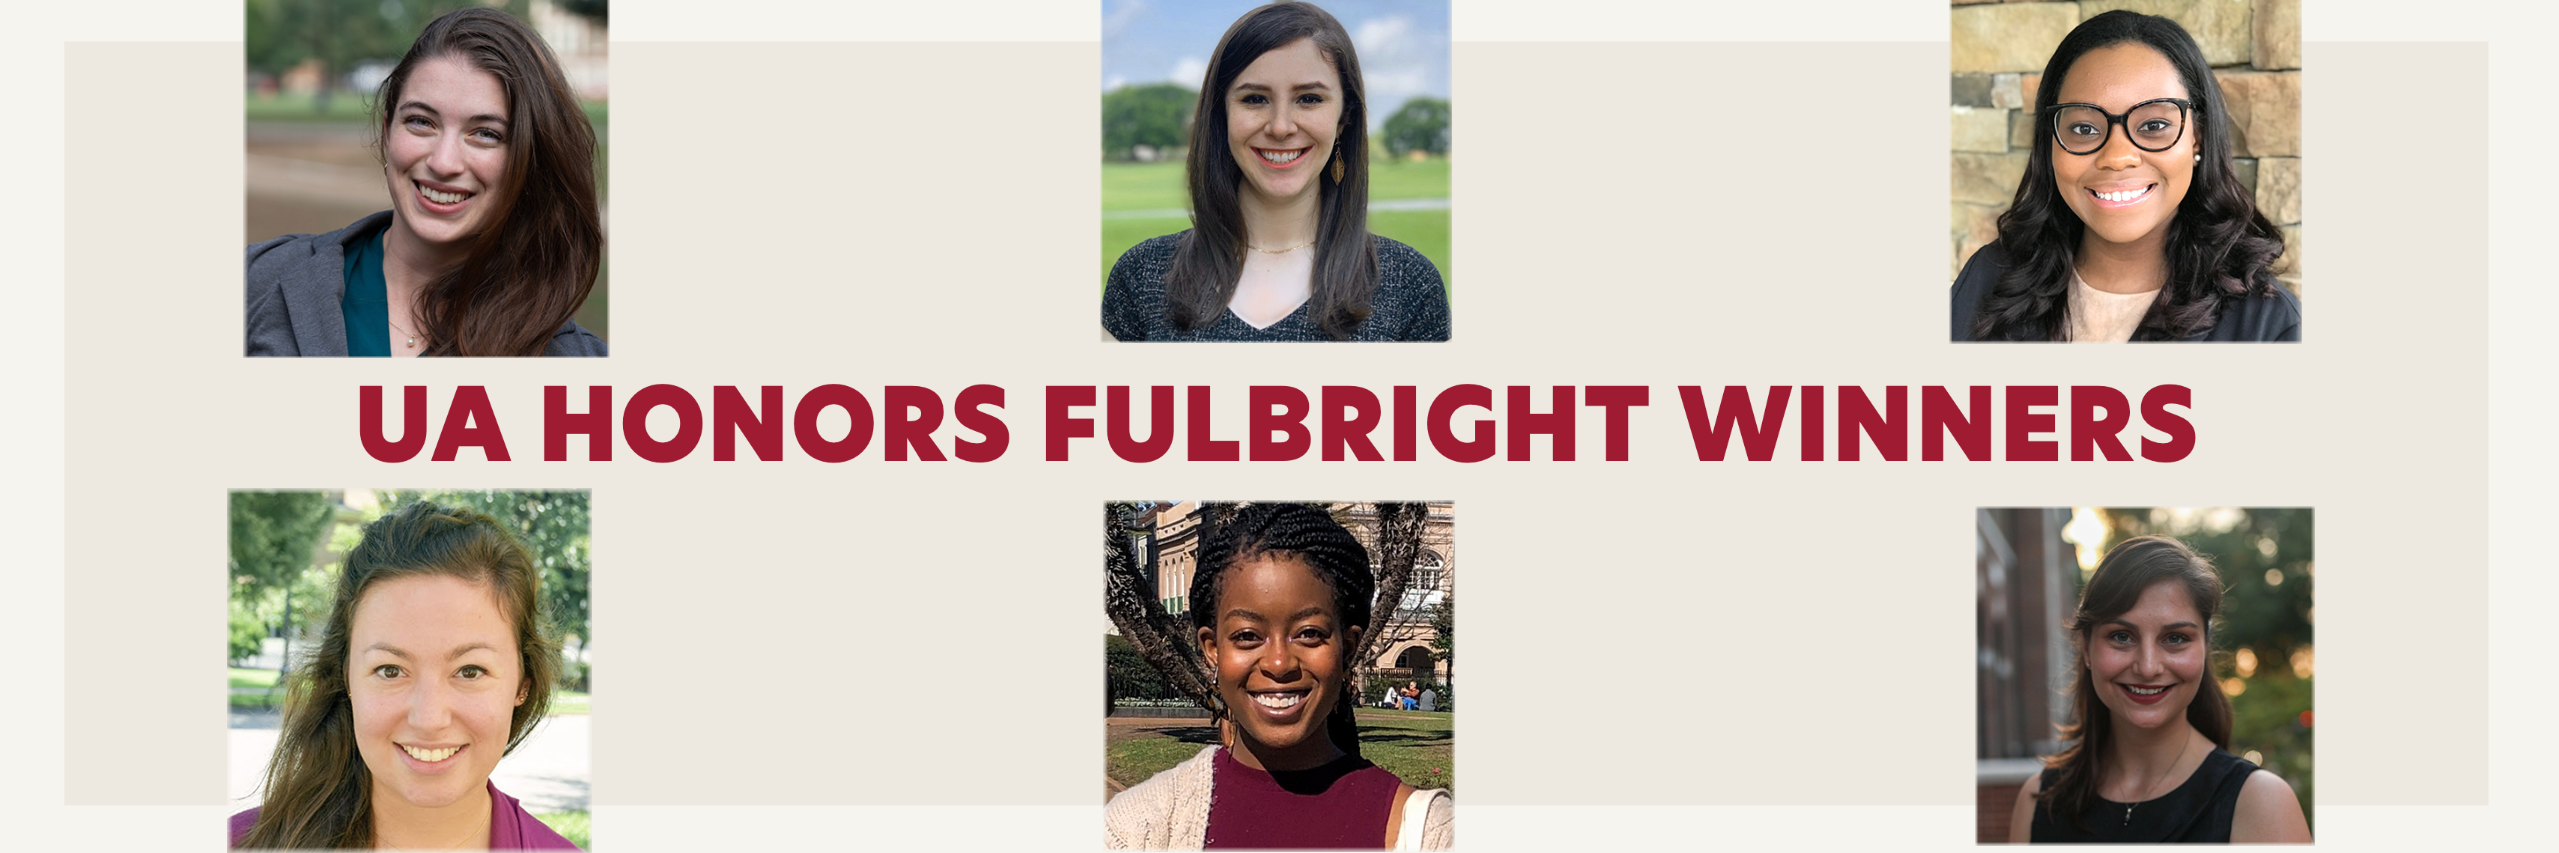 Story Image - Fulbright Winners